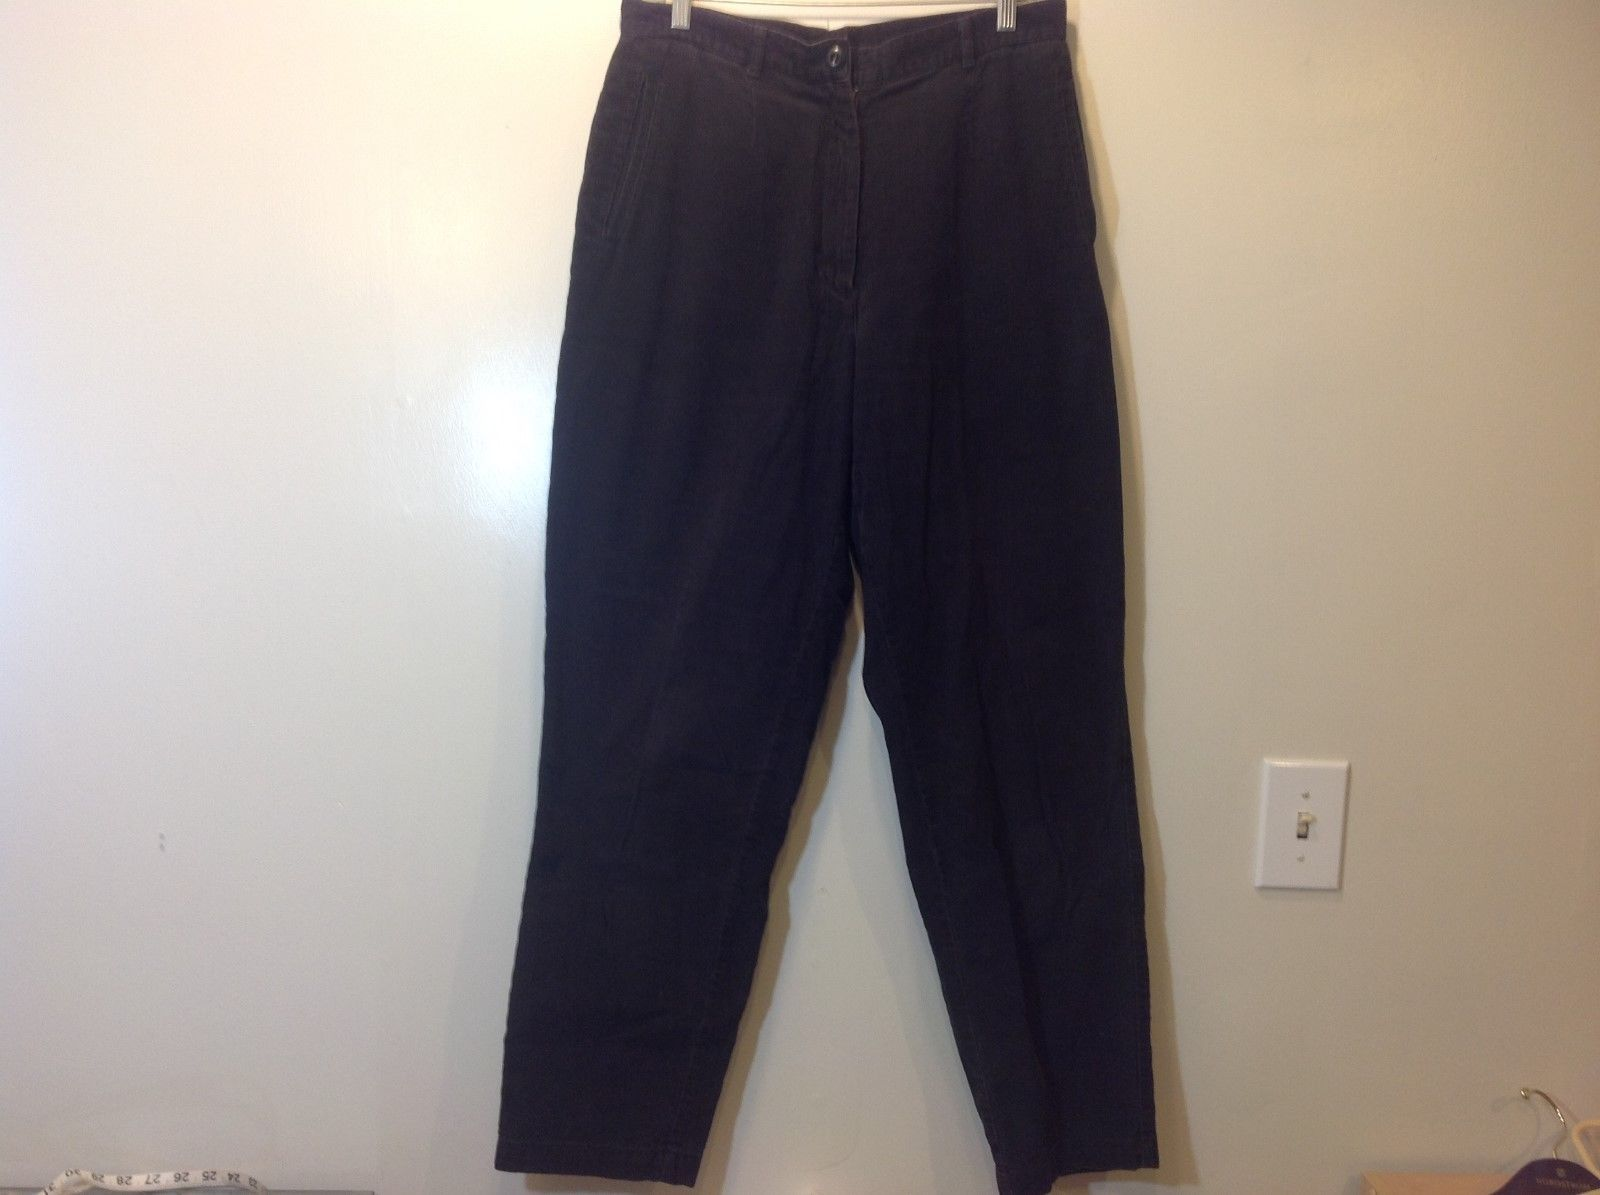 L.L. Bean 100% Cotton Black Corduroy Pants Sz 12